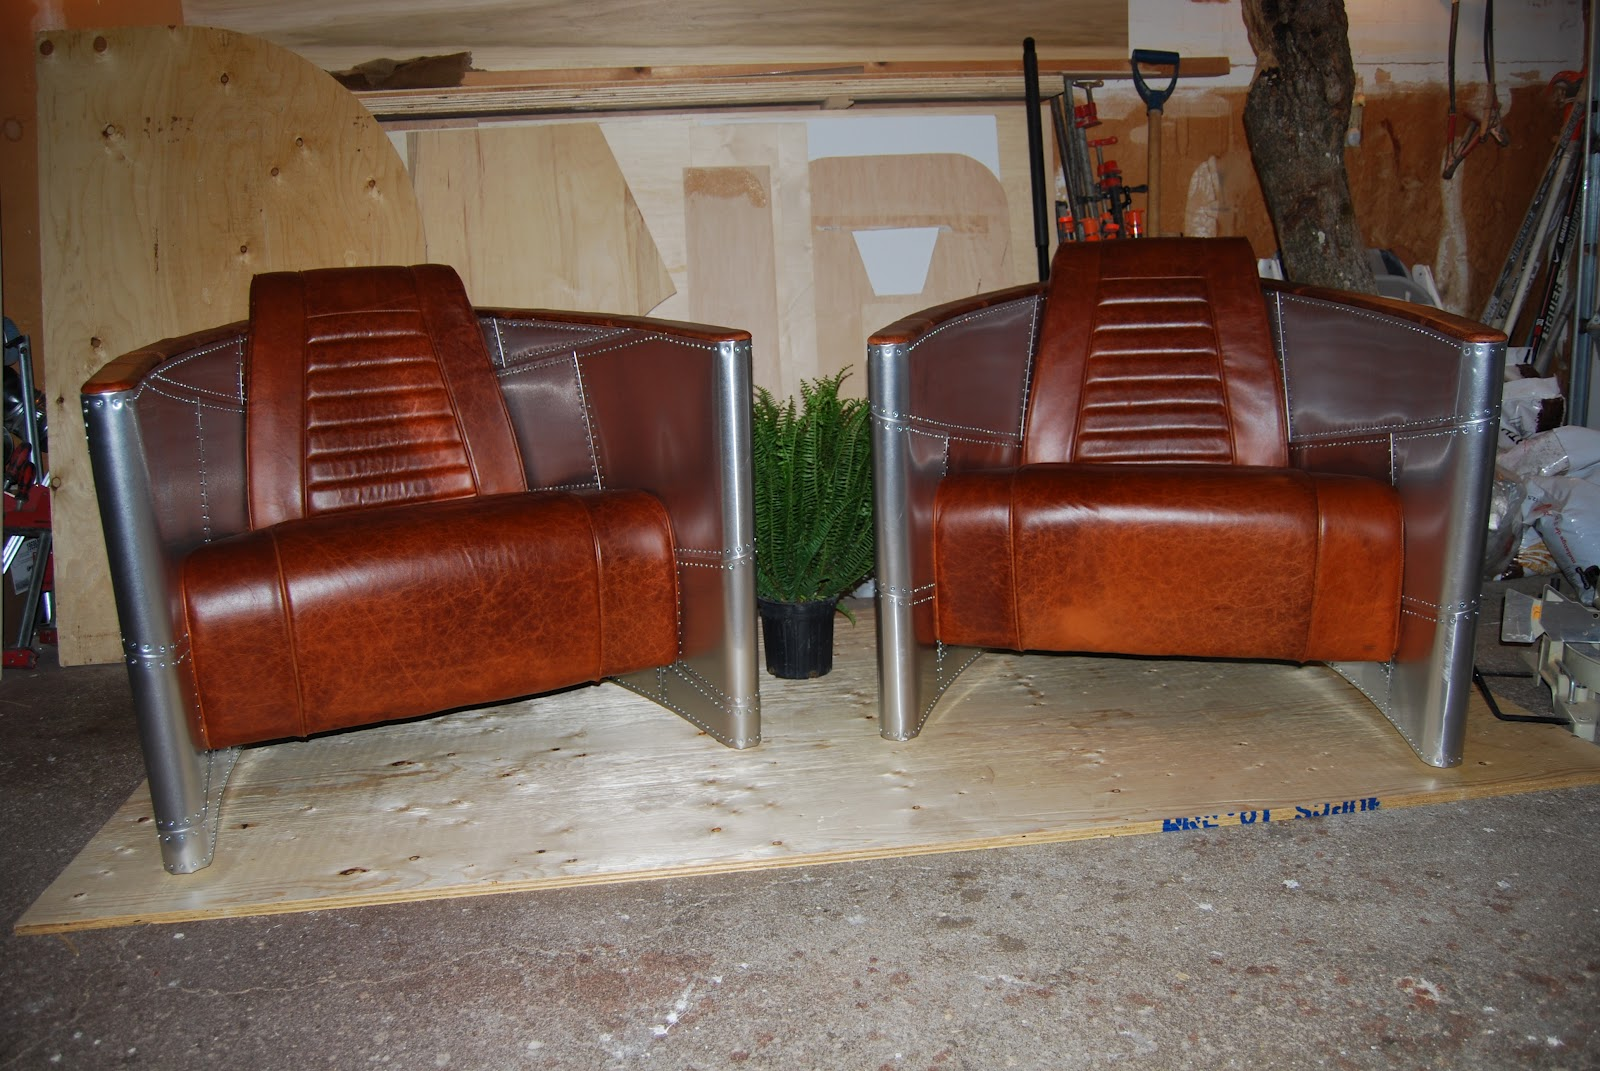 The Aviator Chairs Are Complete And They Look Amazing!! Custom Cowide  Leather Seat Was Superbly Upholstered By A Local Company U2013 JR Custom  Upholstery In ...